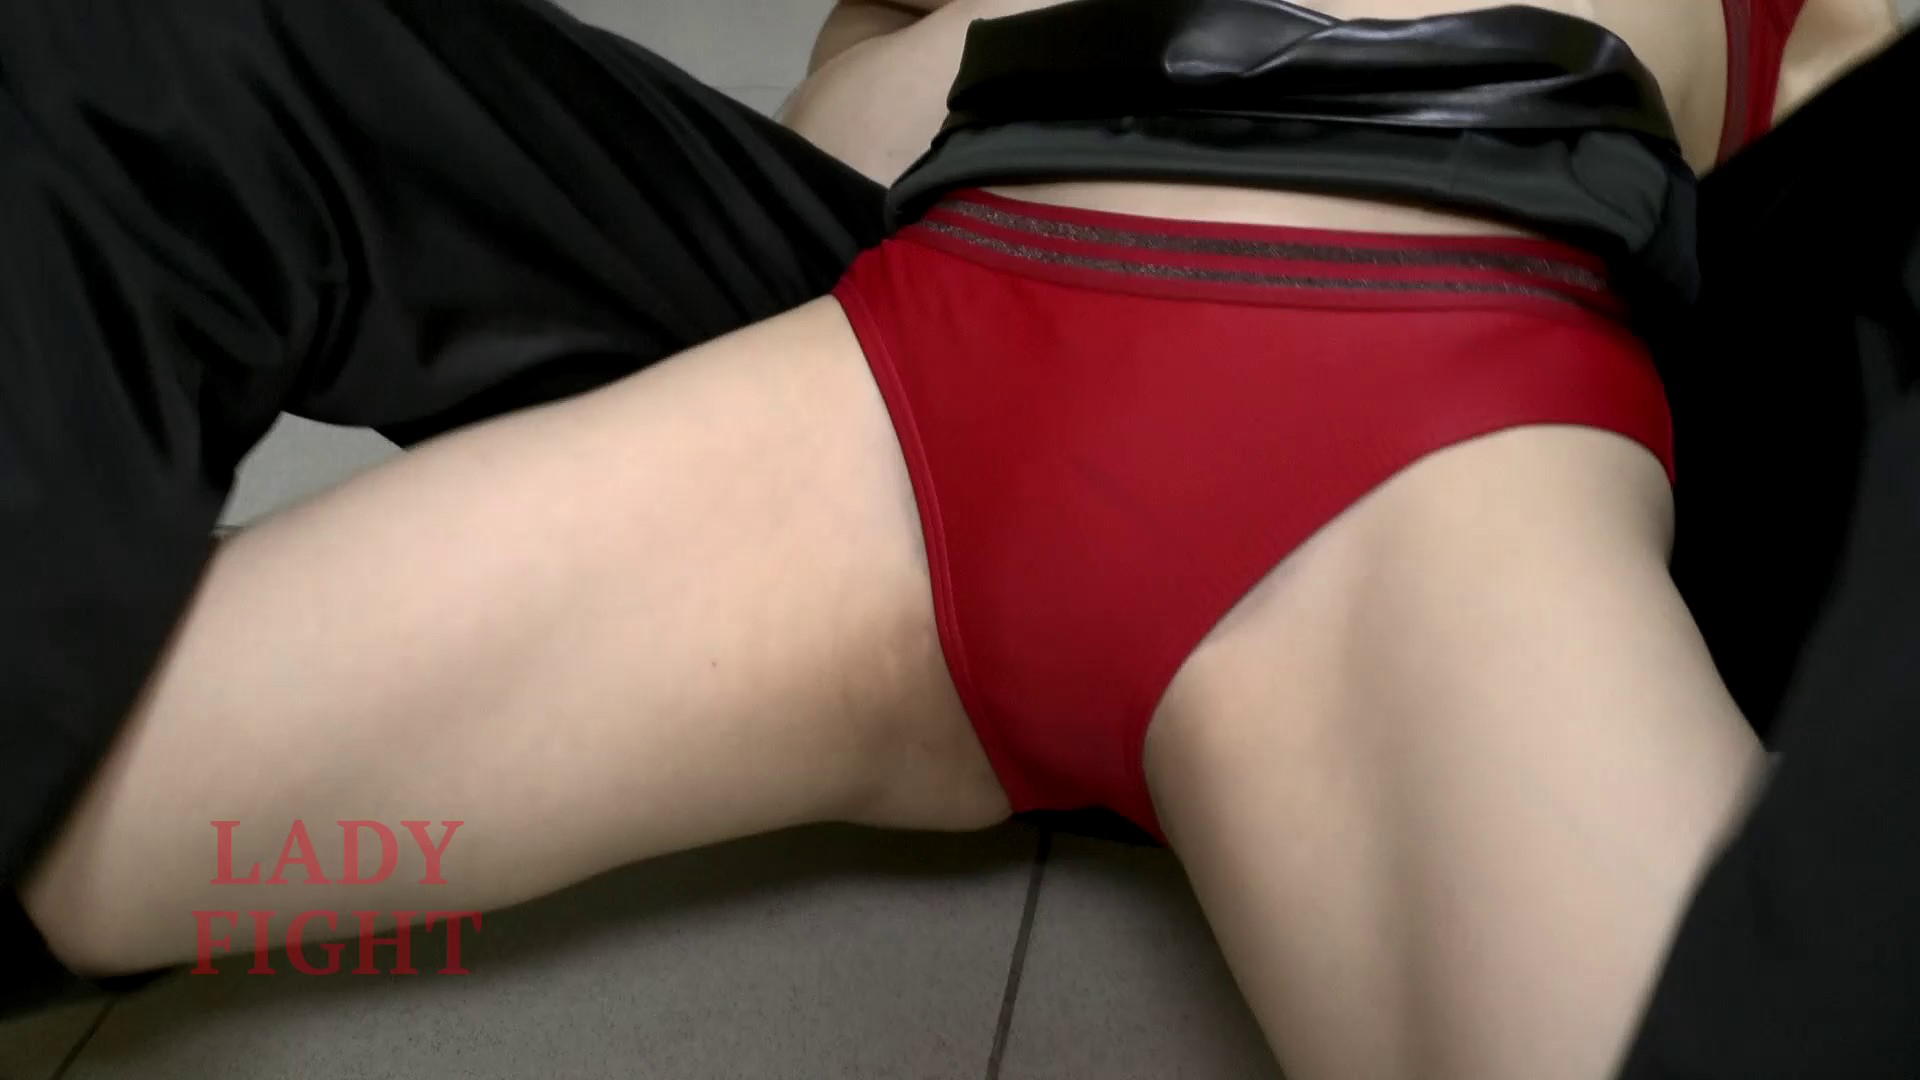 LADYFIGHT-Deadly-Wrestling-For-Lora-80